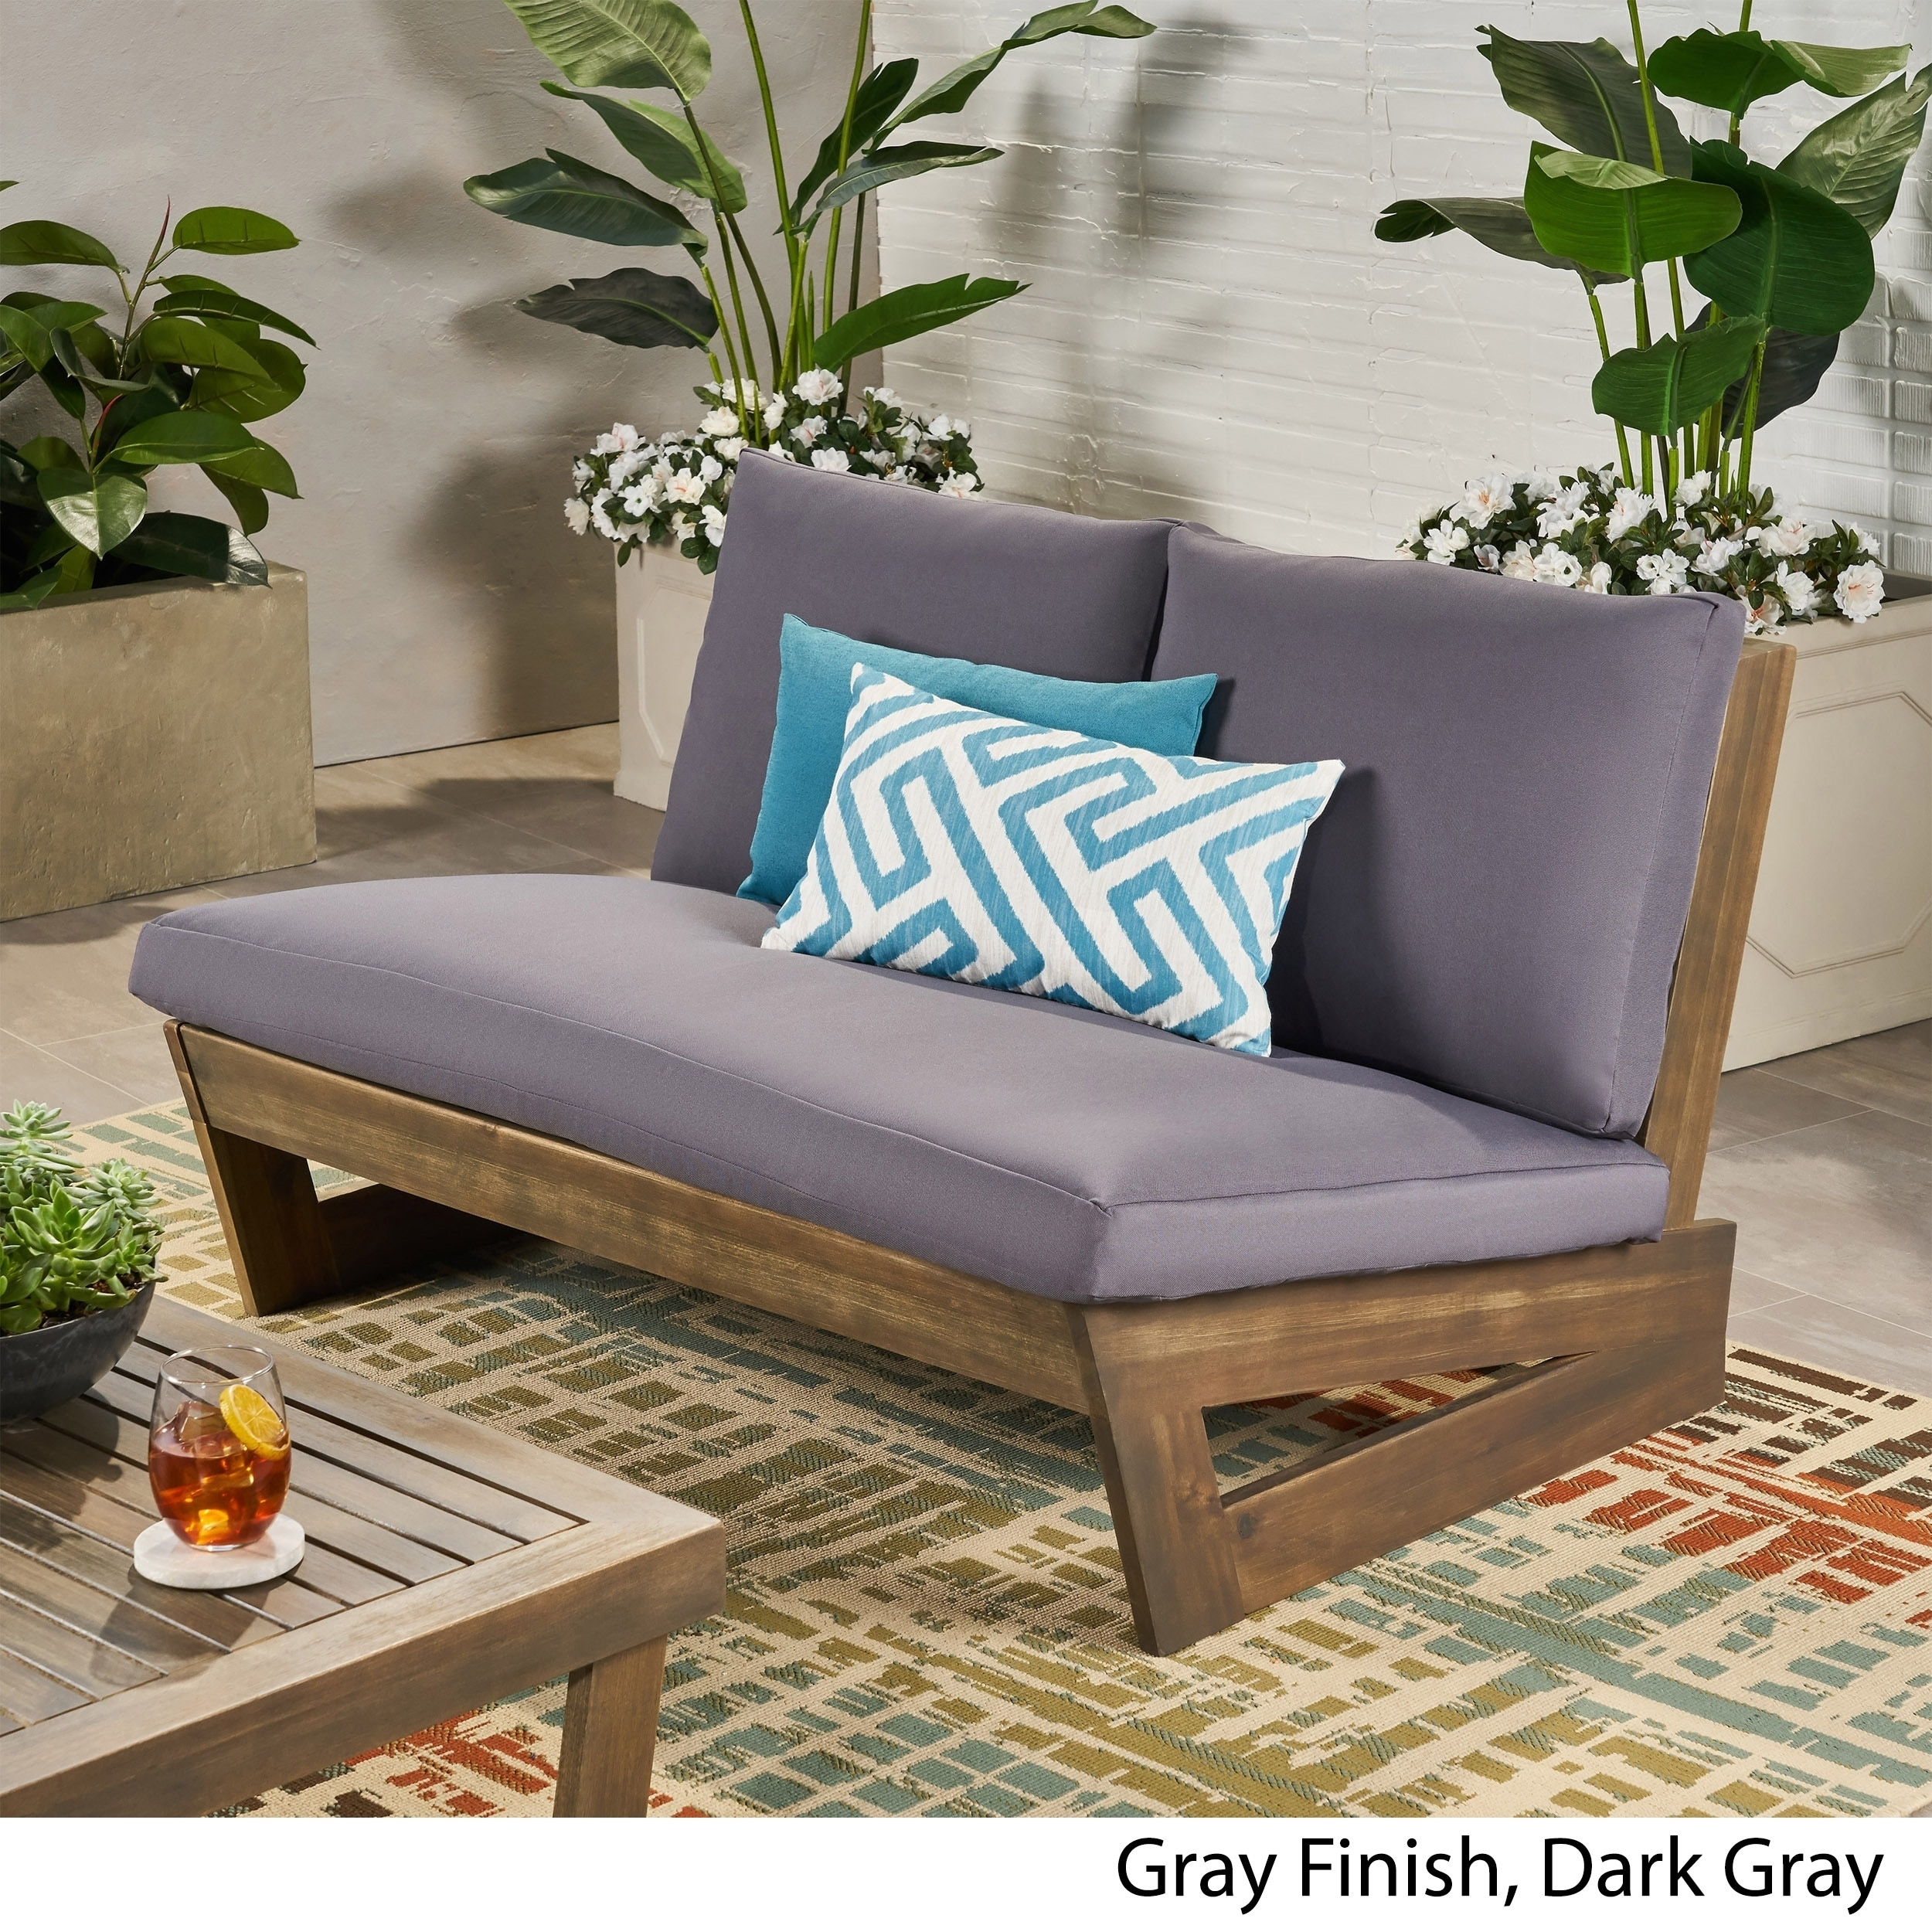 Grey 2 Seater Bench Seat Cushion Waterproof Fabric Outdoor Garden Pad Tufted